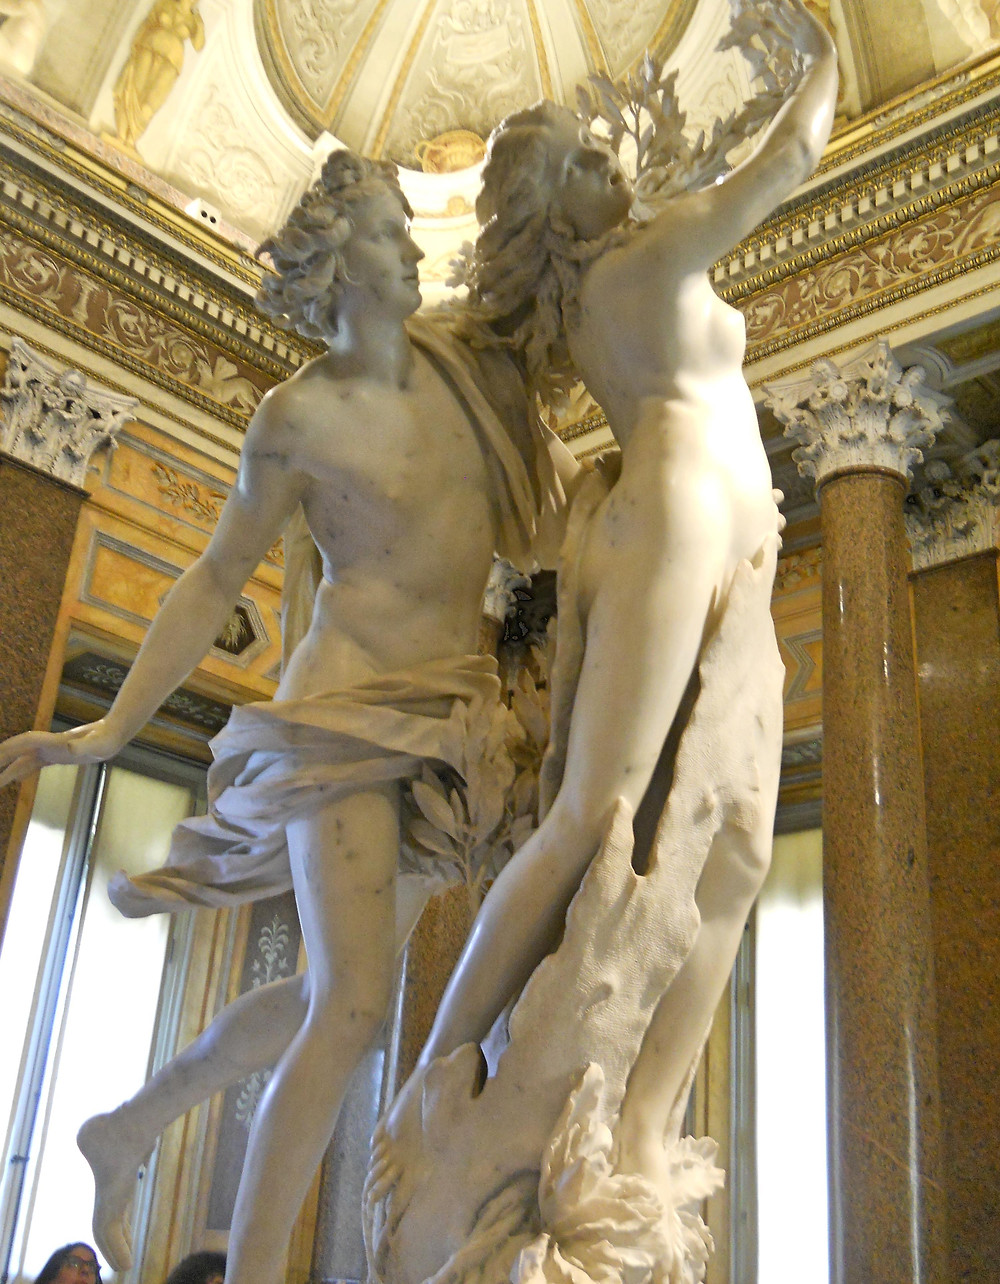 Bernini's Apollo & Daphne at the Villa Borghese, Rome, Italy...June 2015